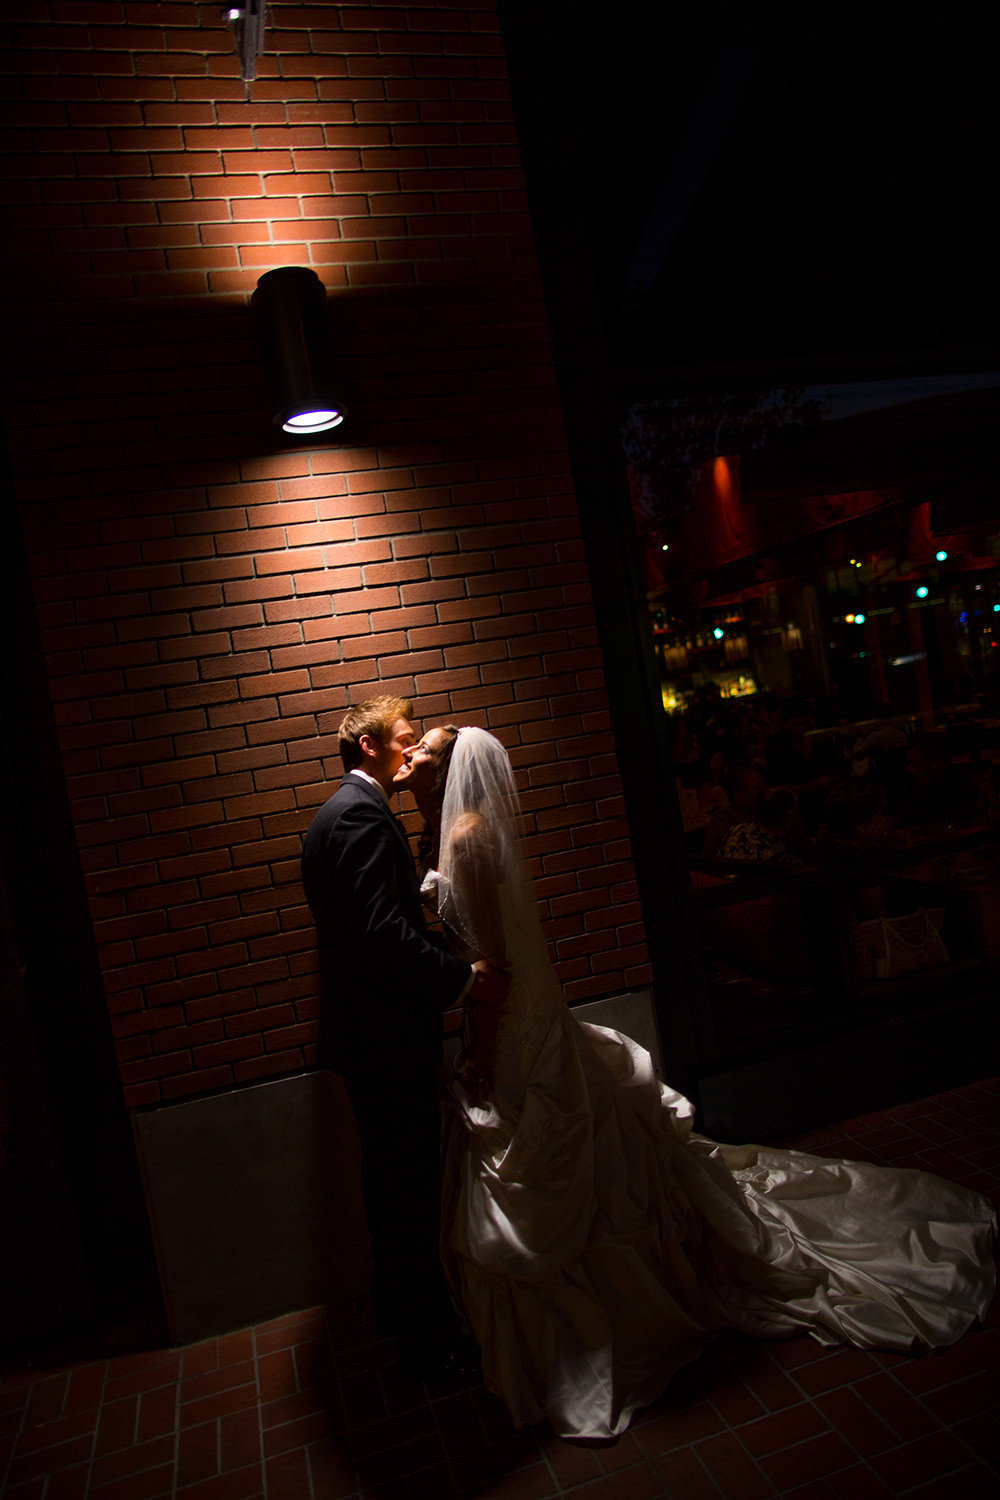 dramatic night shot with bride and groom